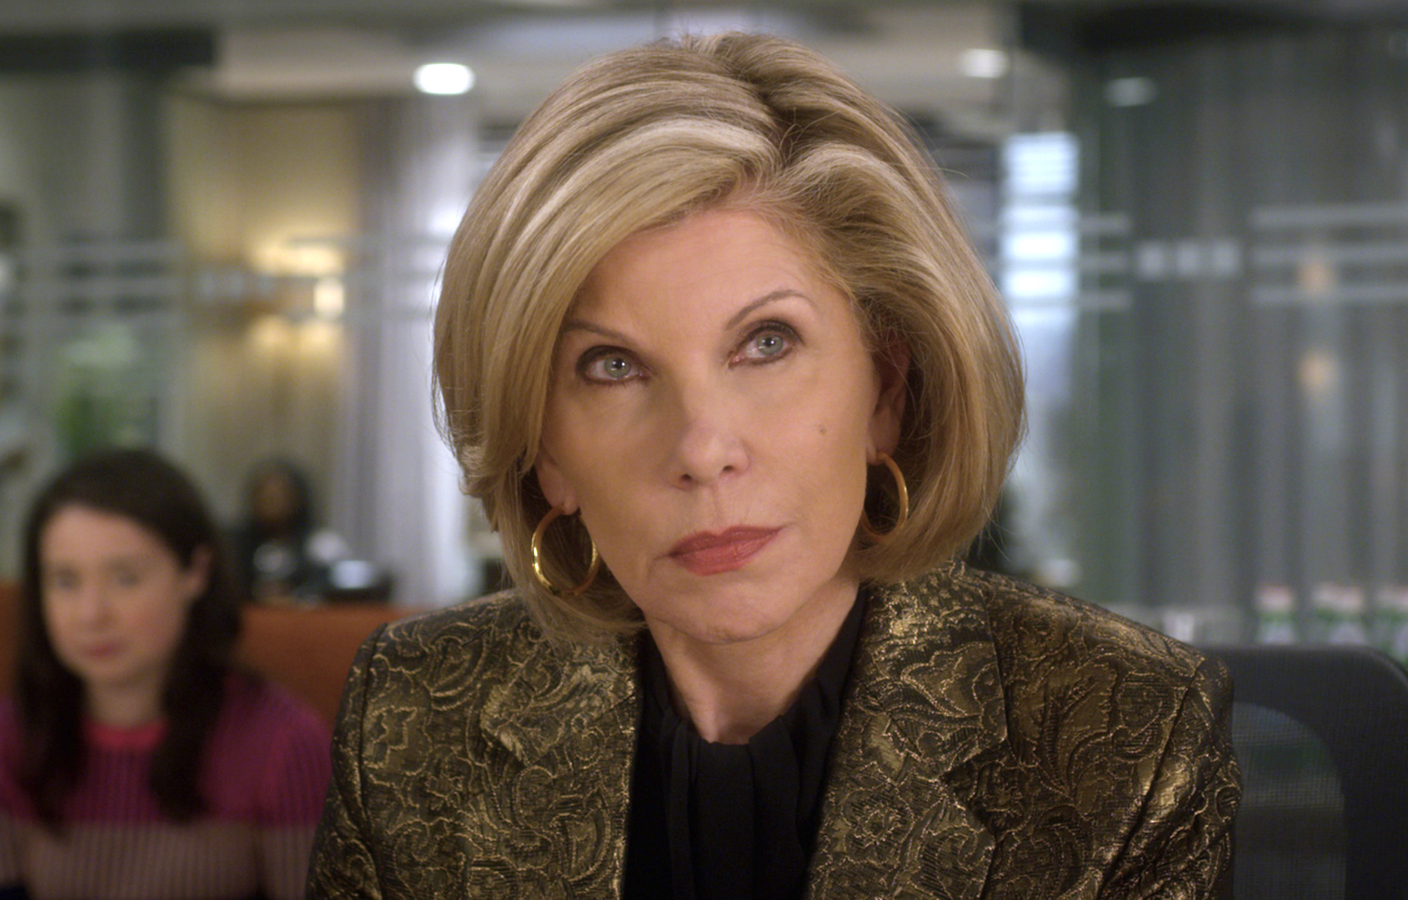 Christine Baranski in last week's Good Fight Season 4 premiere. (Photo: CBS All Access)